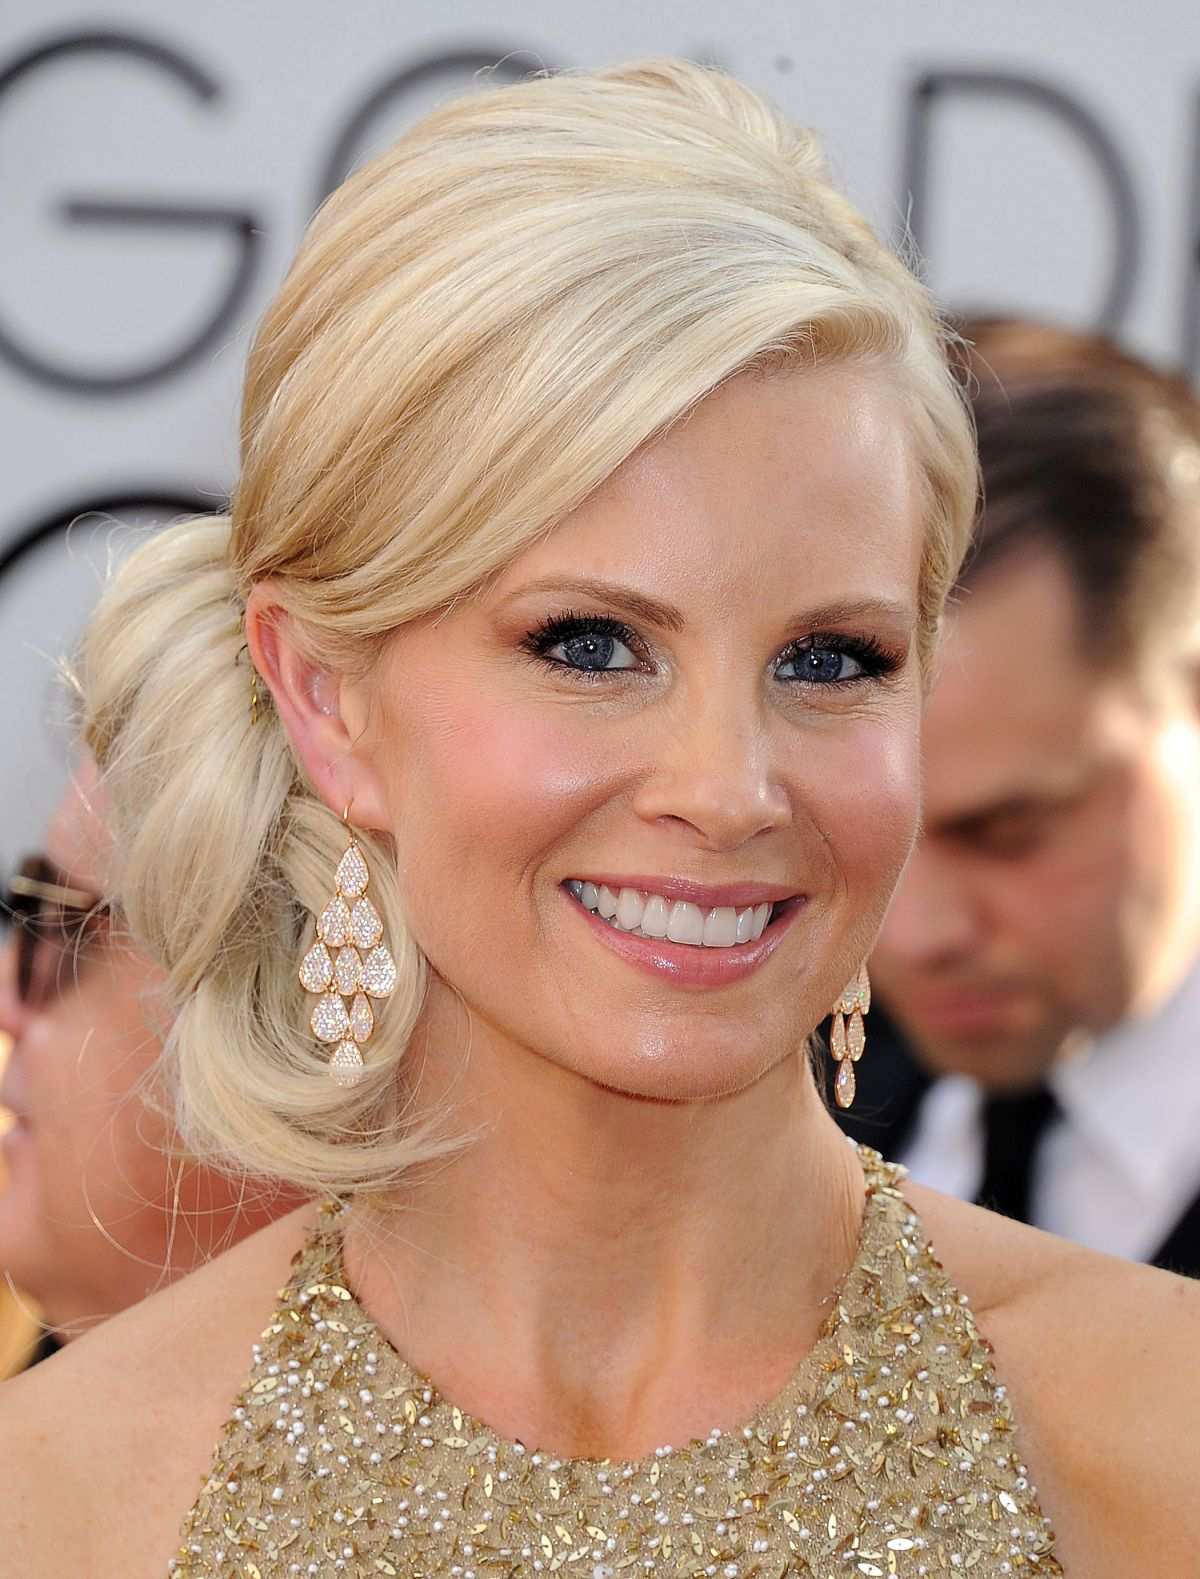 monica potter con airmonica potter wiki, monica potter young, monica potter 1990, monica potter 2001, monica potter 1997, monica potter maxim, monica potter instagram, monica potter con air, monica potter husband, моника поттер фильмография, monica potter twitter, monica potter, monica potter store, monica potter actress, monica potter parenthood, monica potter 2015, monica potter home, monica potter imdb, monica potter pregnant, monica potter net worth